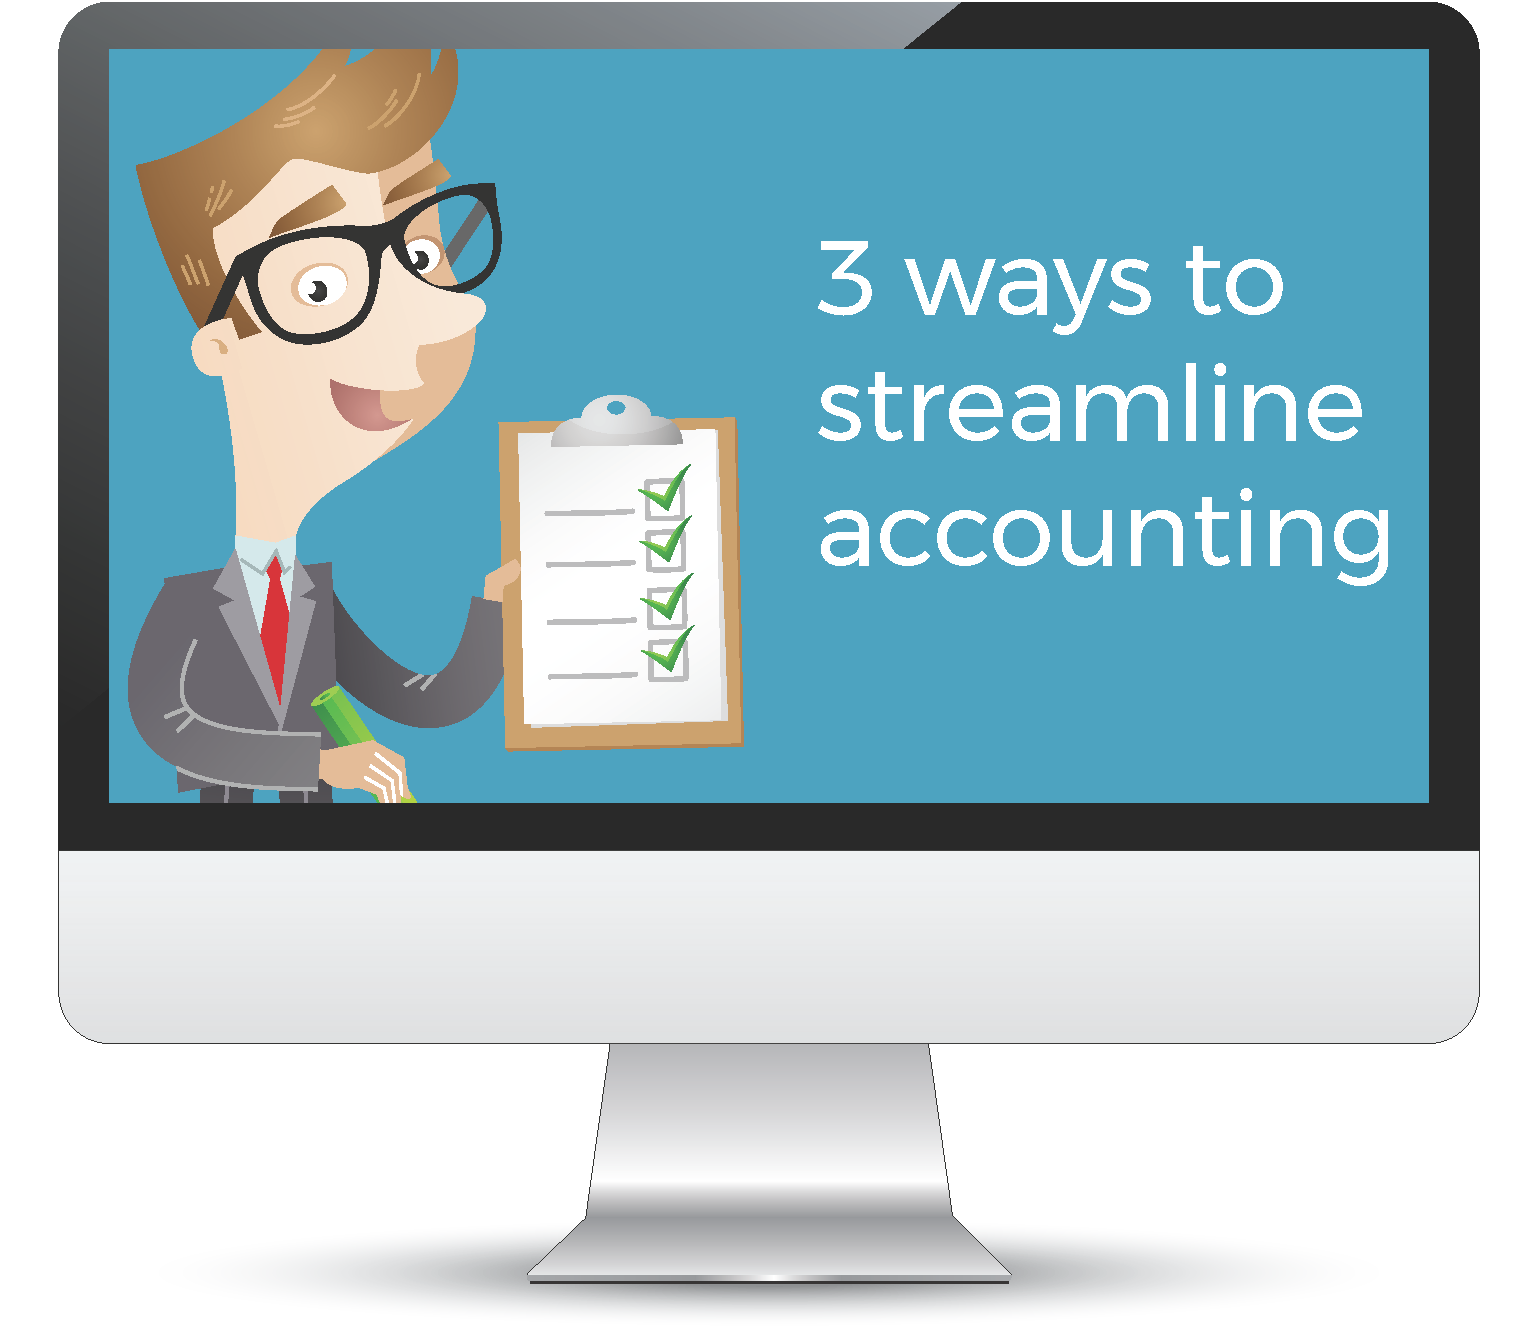 Streamline accounting department